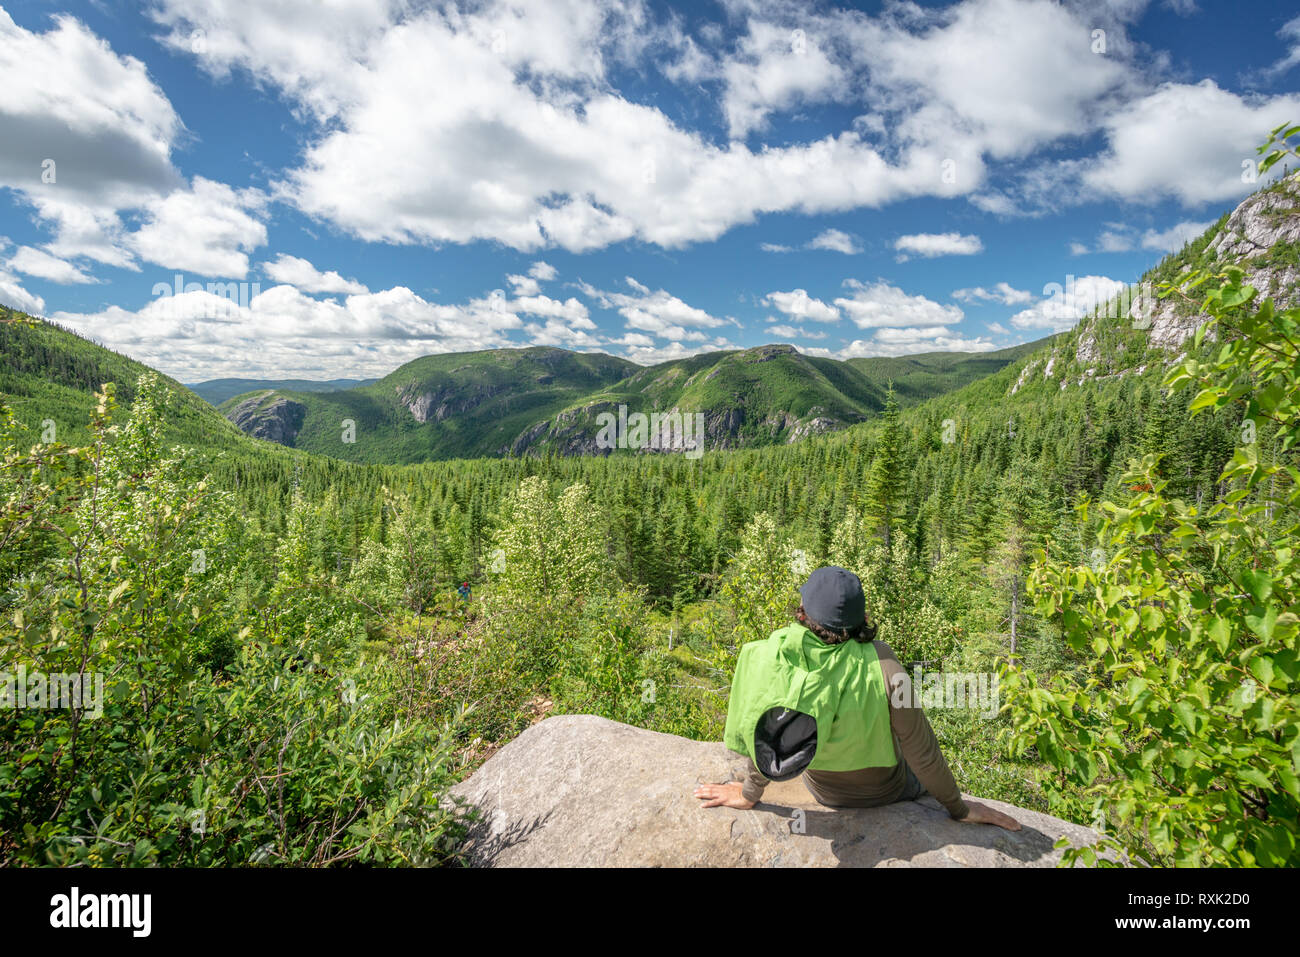 Single hiker man resting and looking at a beautiful mountain view in Les Grands-Jardins National Park, province of Quebec, Canada - Stock Image